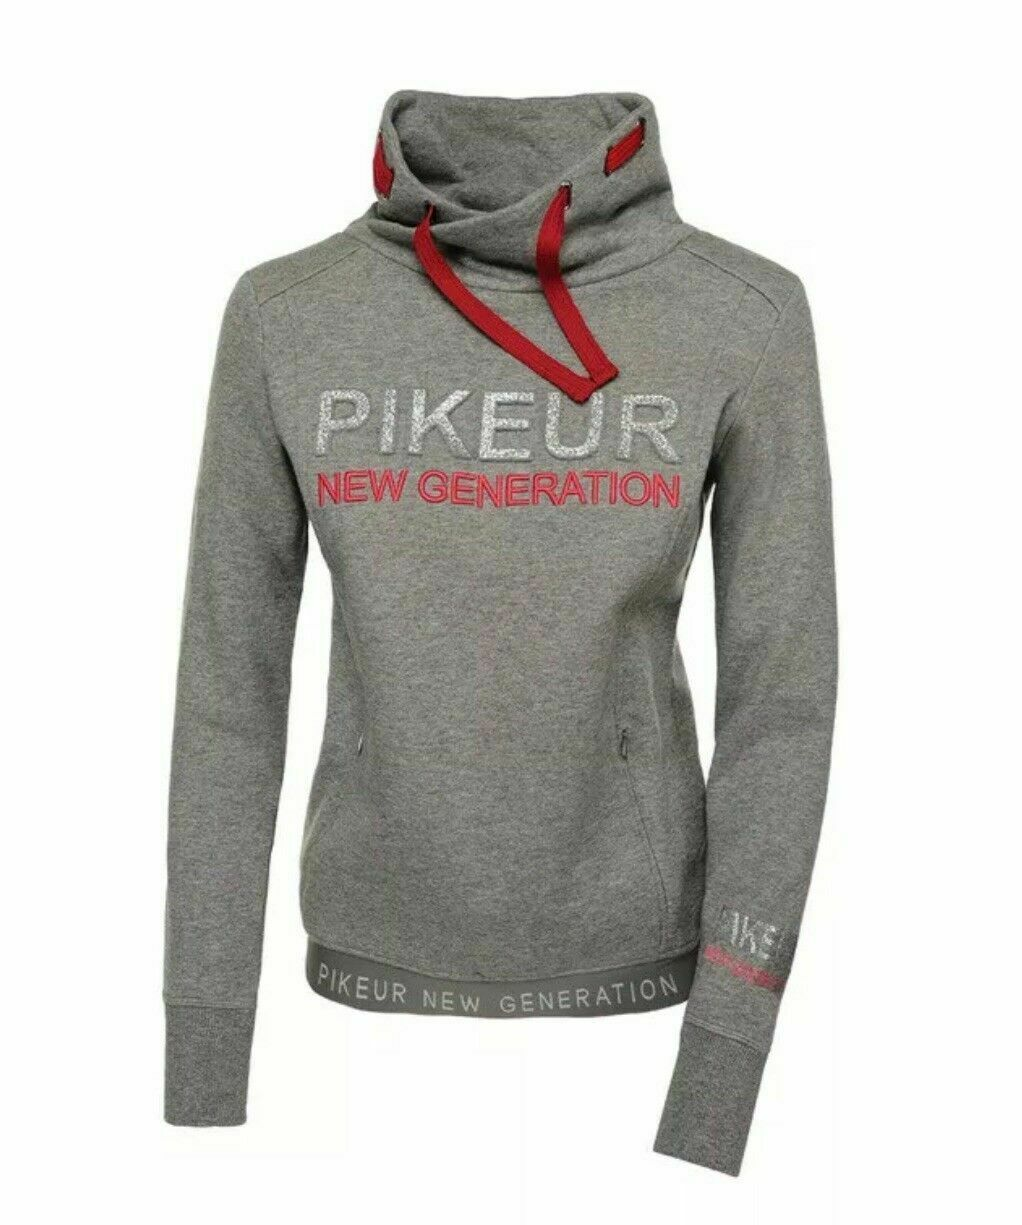 Pikeur Next Generation Gracelynn Hoodie Sweatshirt Top ladies grey 36  38  outlet factory shop